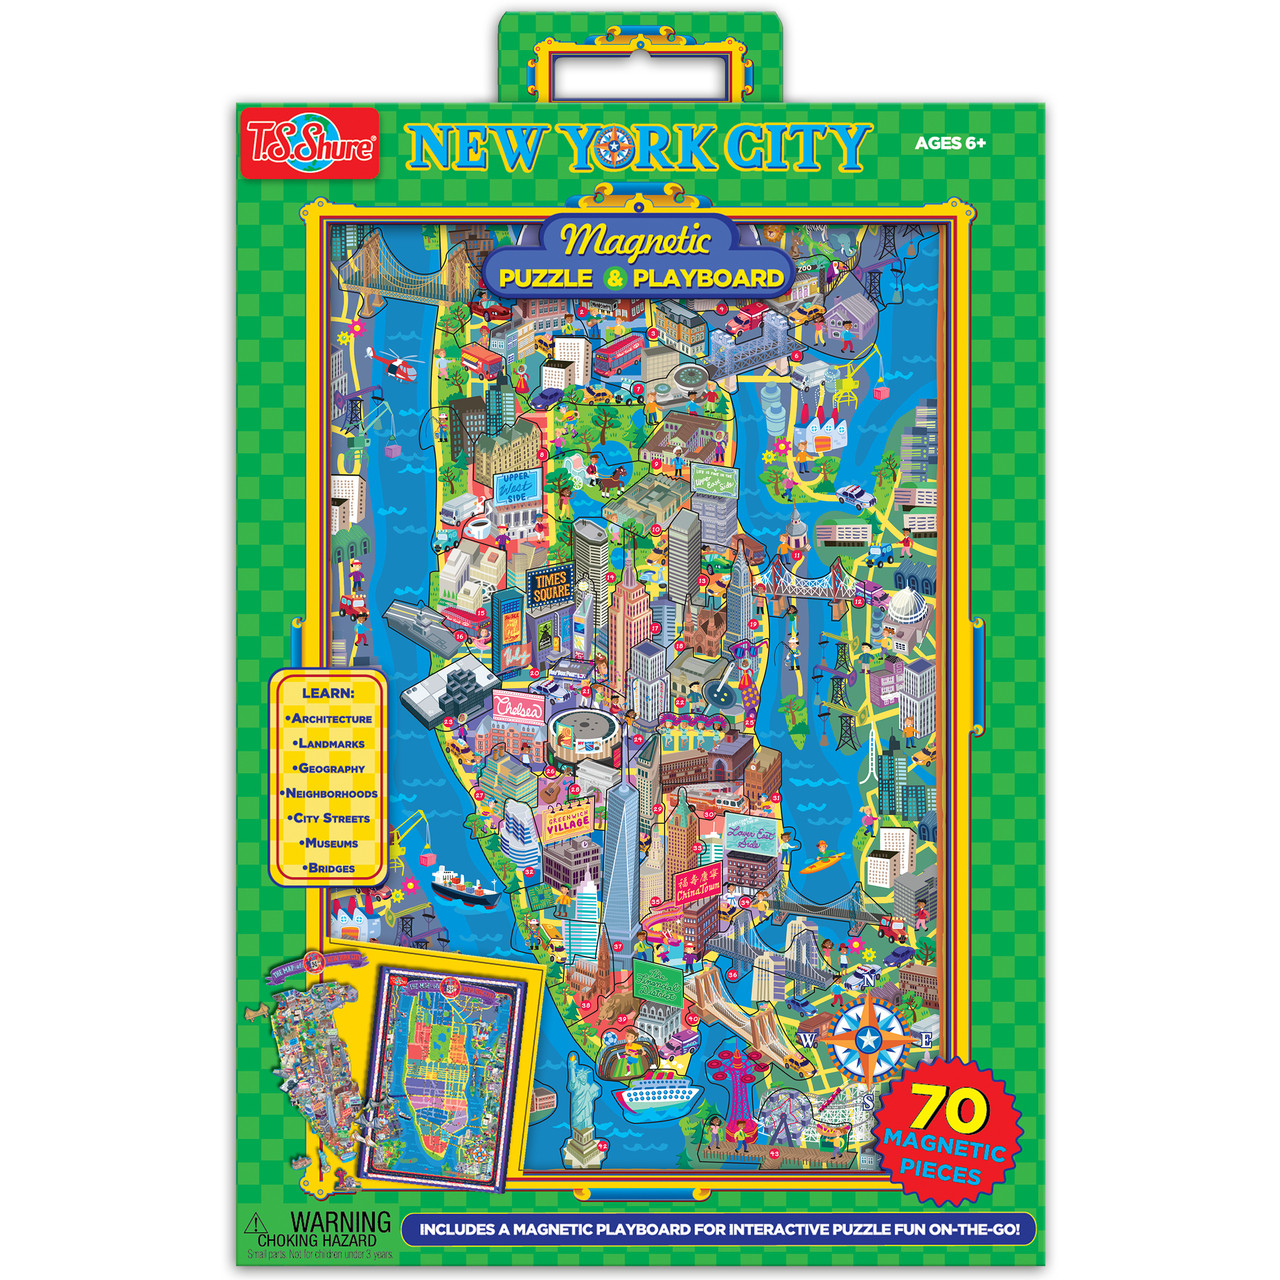 Map Of New York City With Landmarks.Map Of New York City Magnetic Puzzle Playboard